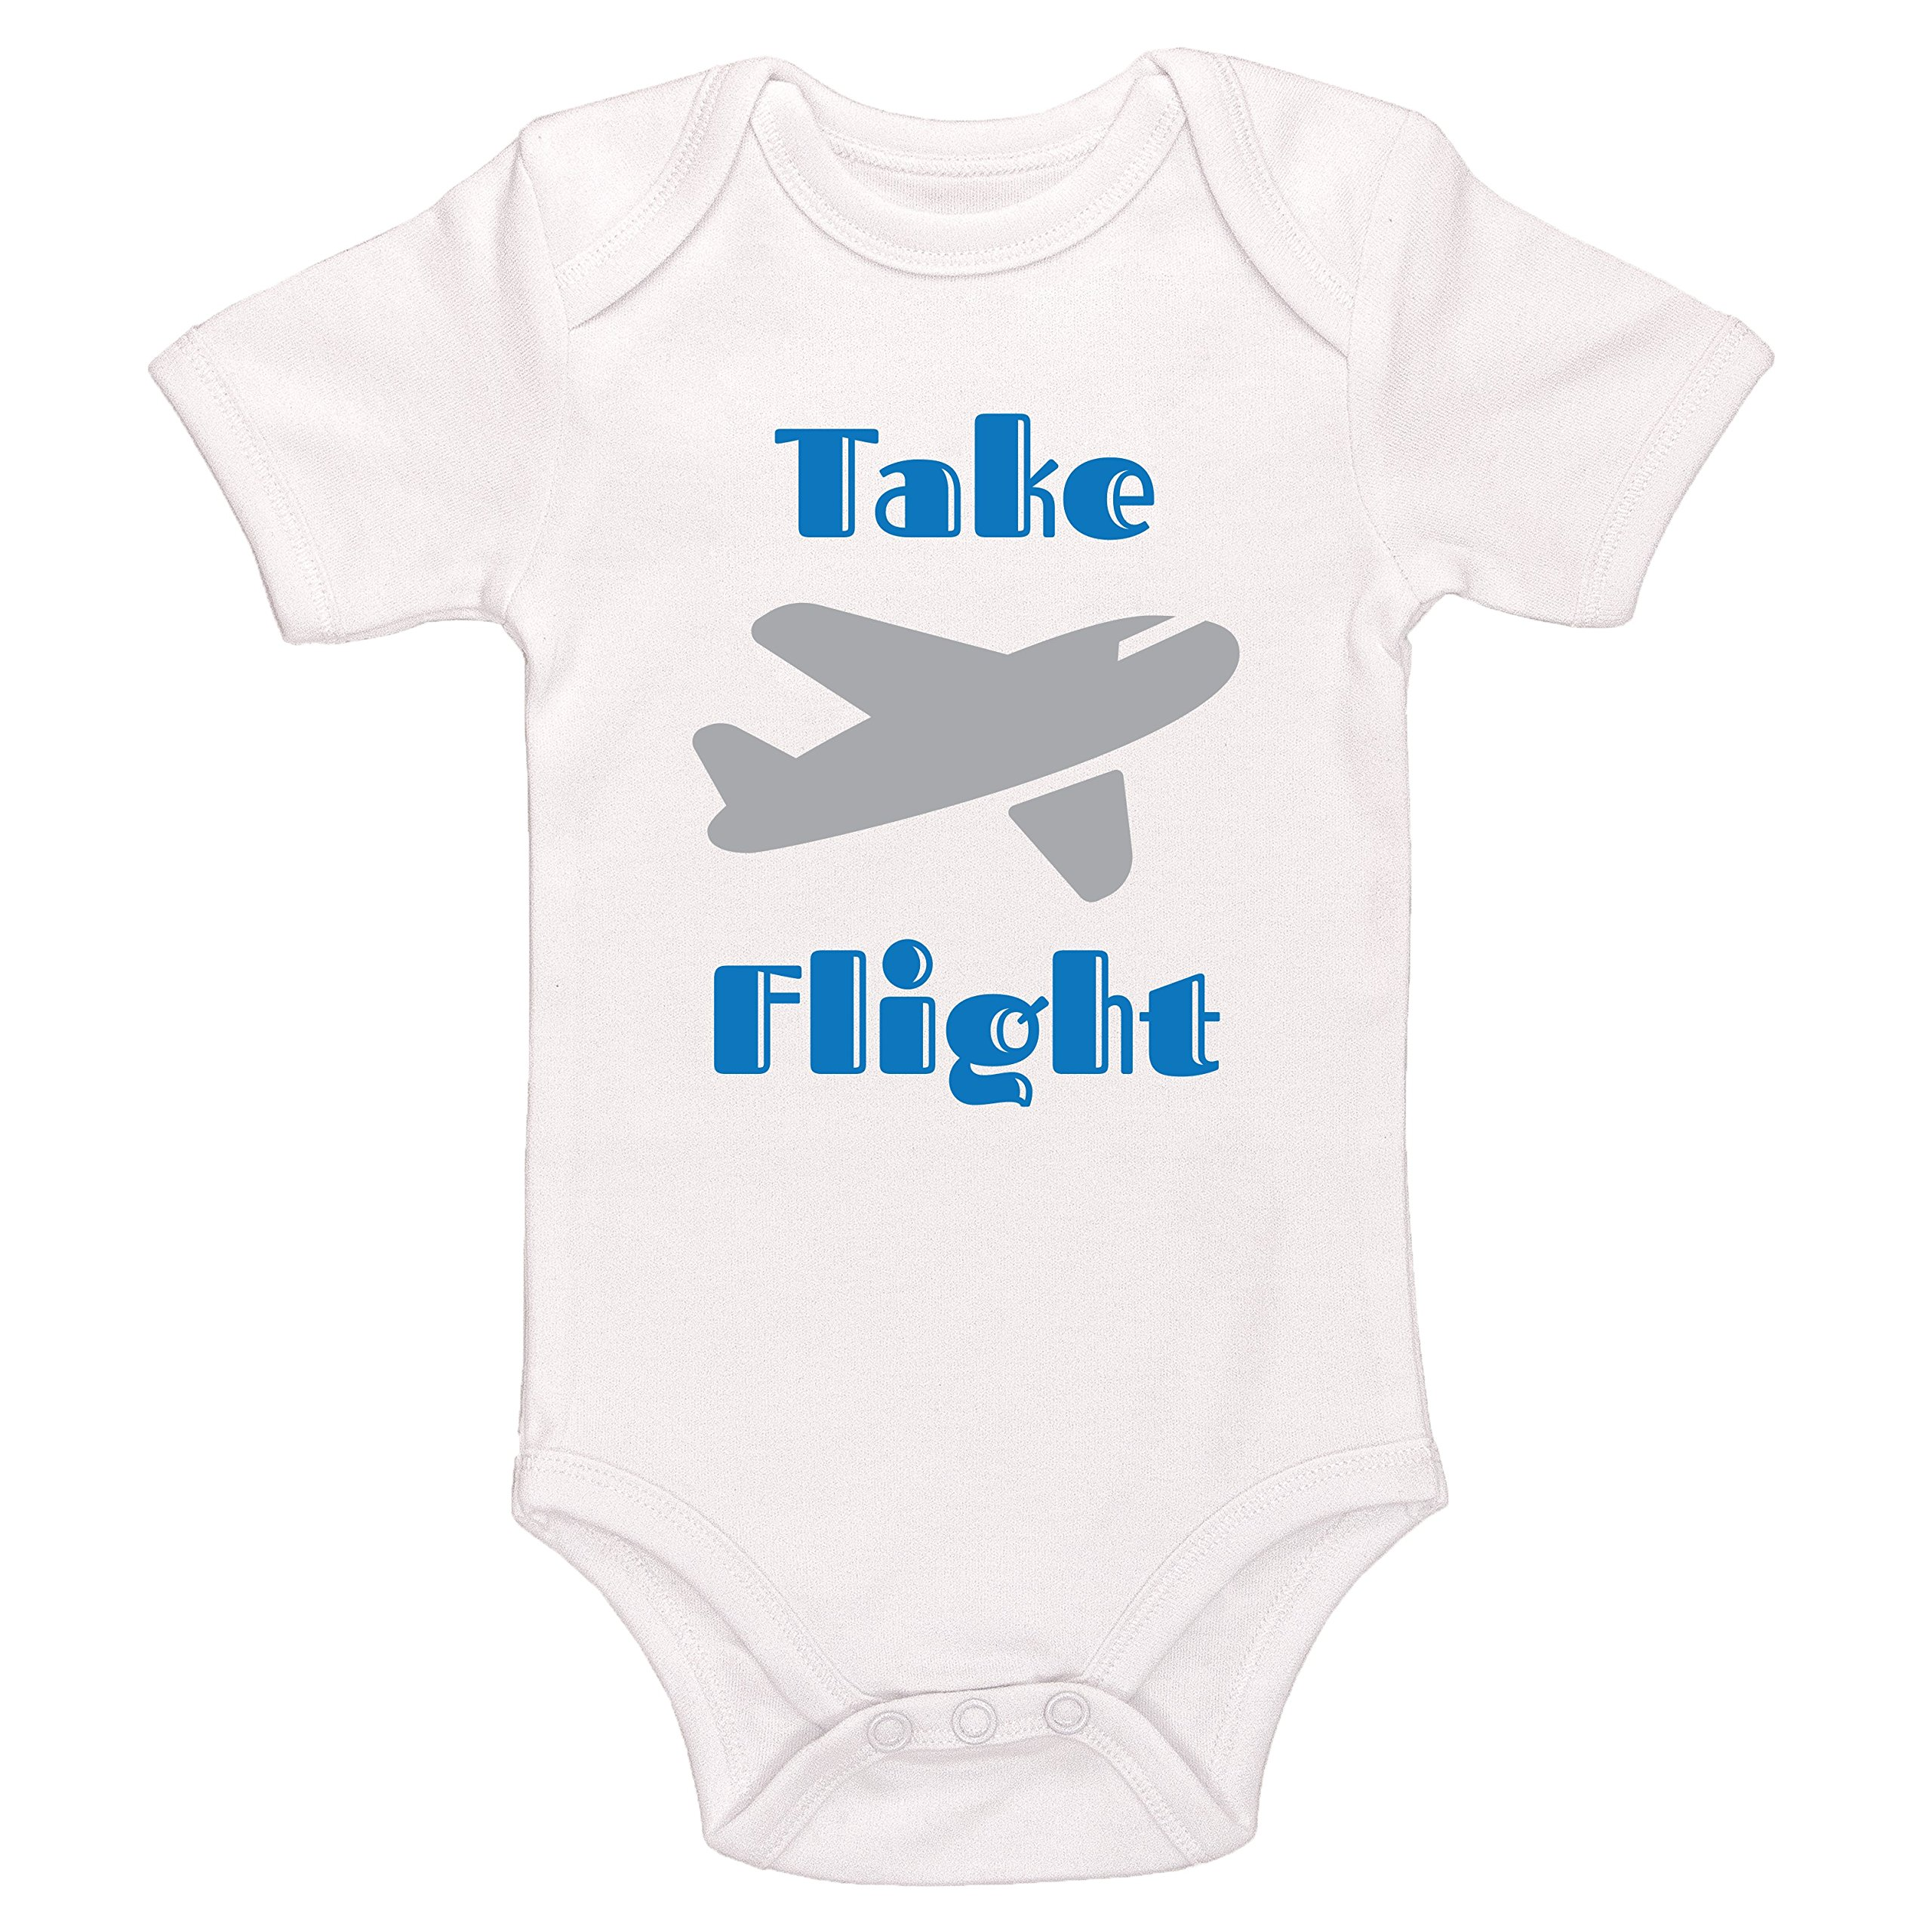 Starlight Baby Take Flight Bodysuit (White, 0-3 Months)